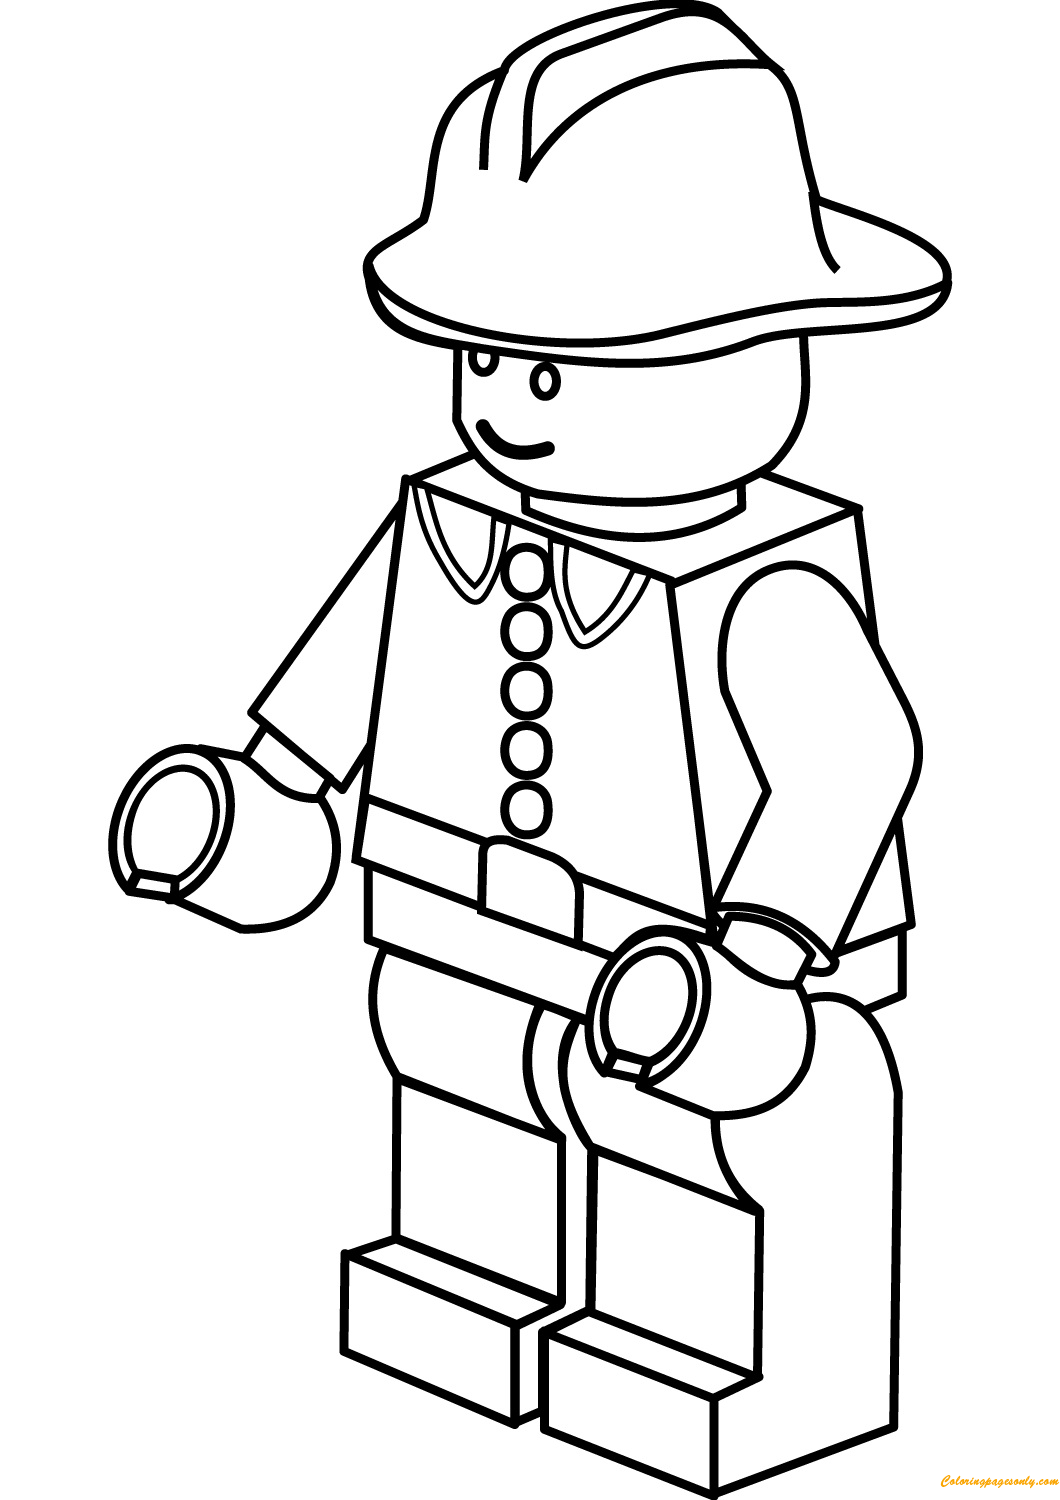 Lego City Firefighter Coloring Page Free Coloring Pages